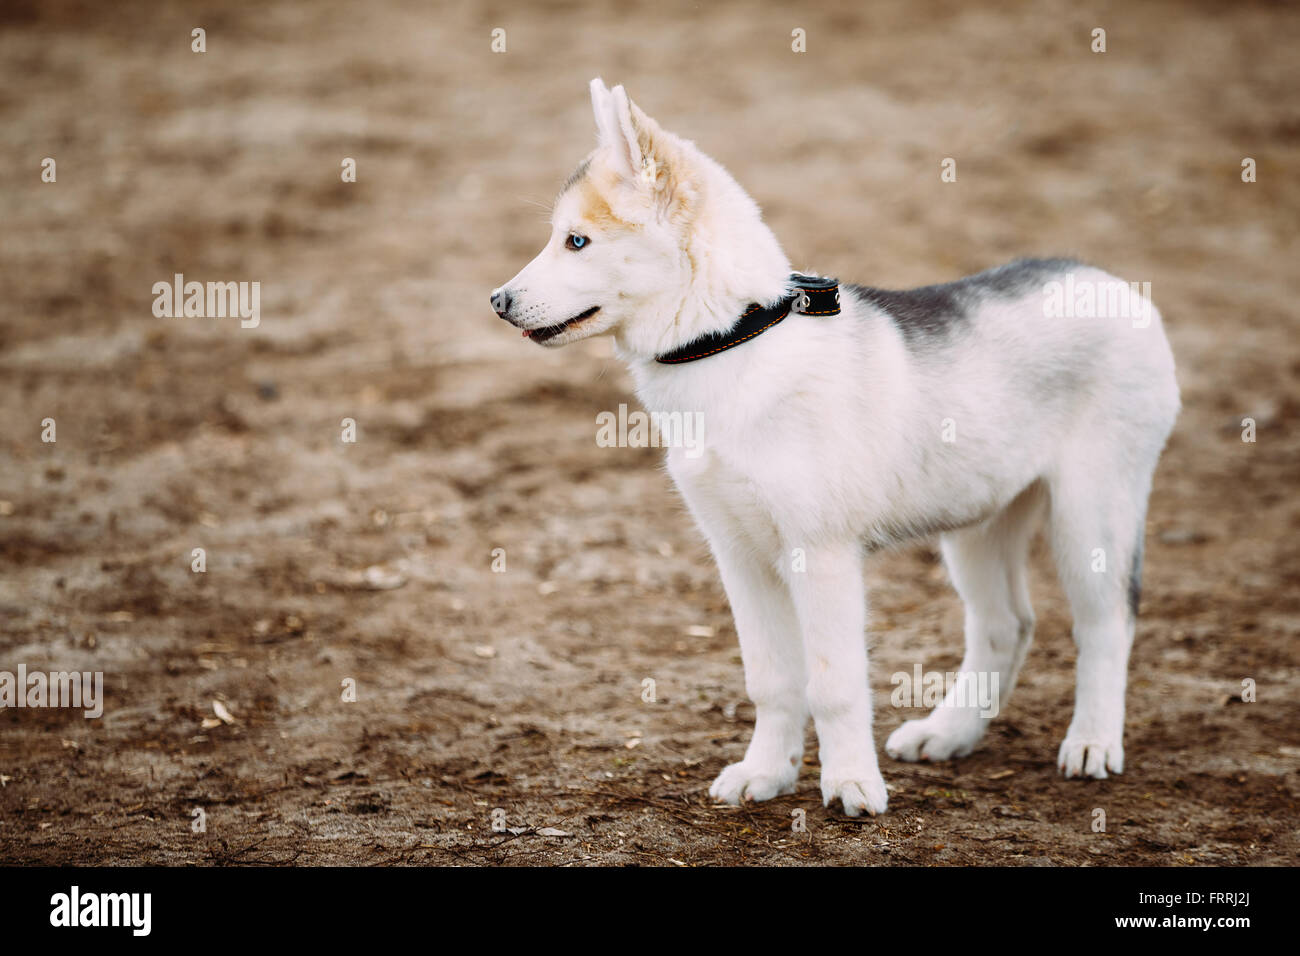 Young White Husky Puppy Dog With Blue eyes Outdoor In Autumn Park - Stock Image